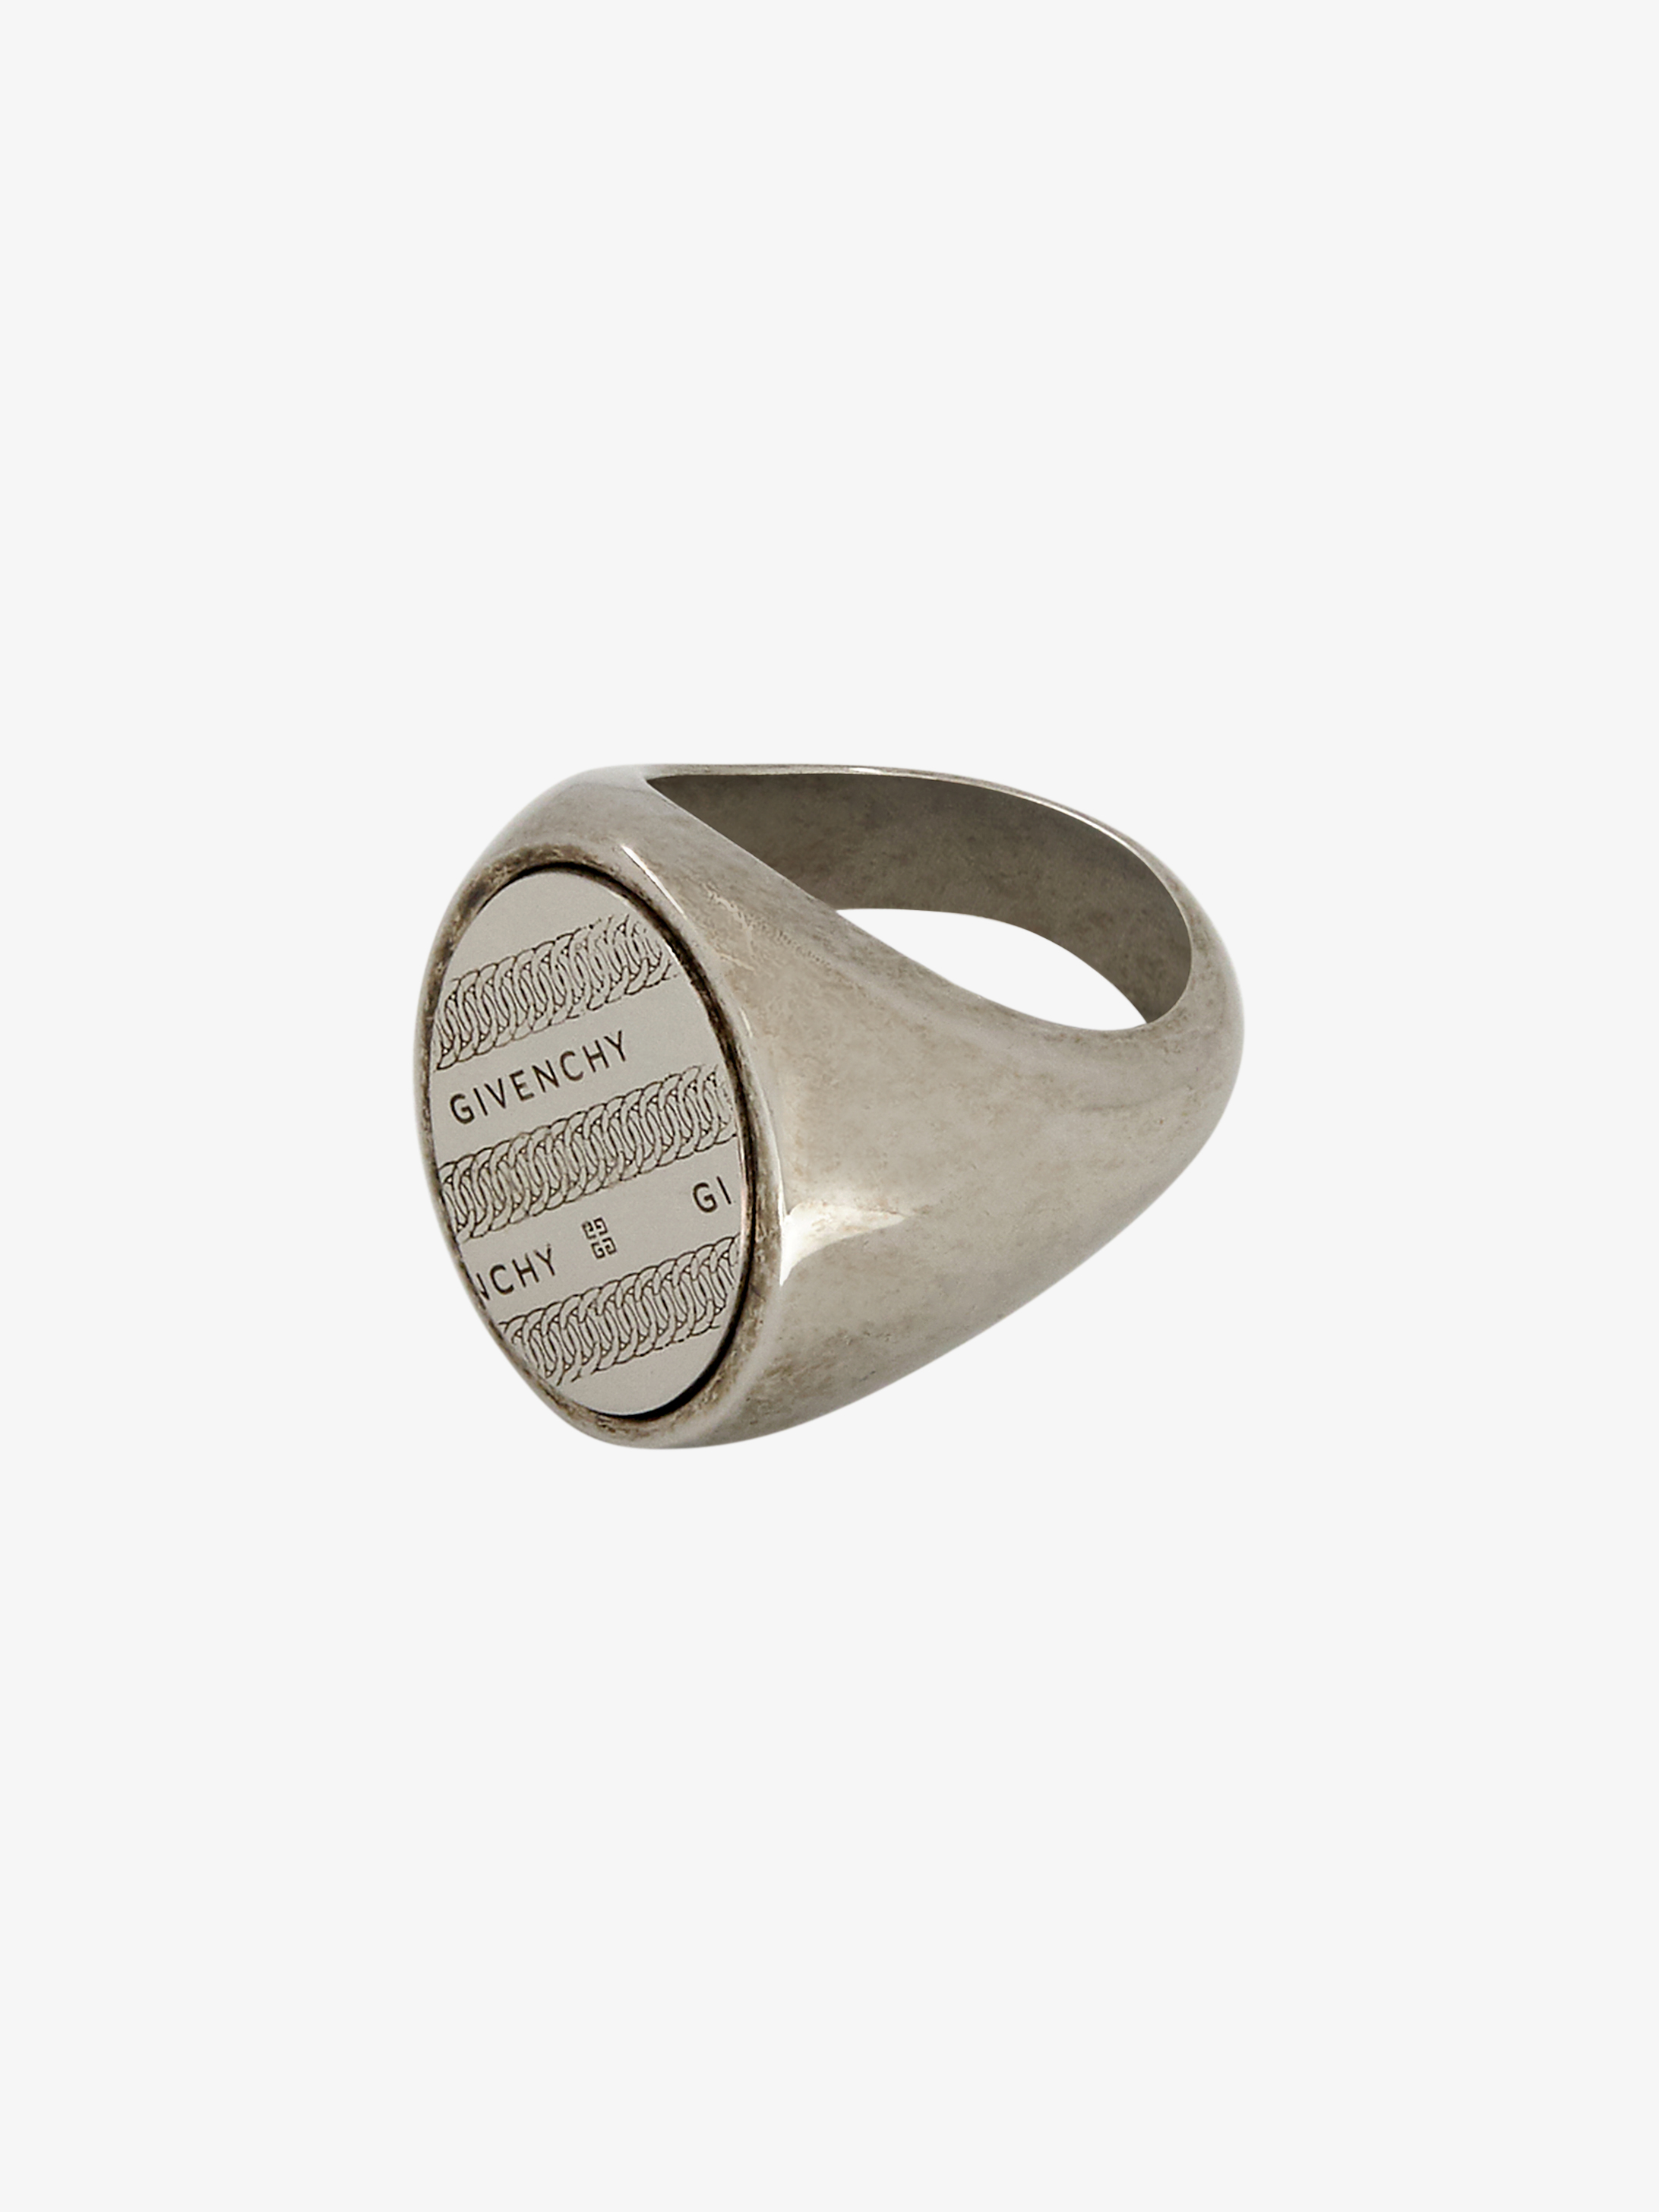 GIVENCHY chain engrave signet ring